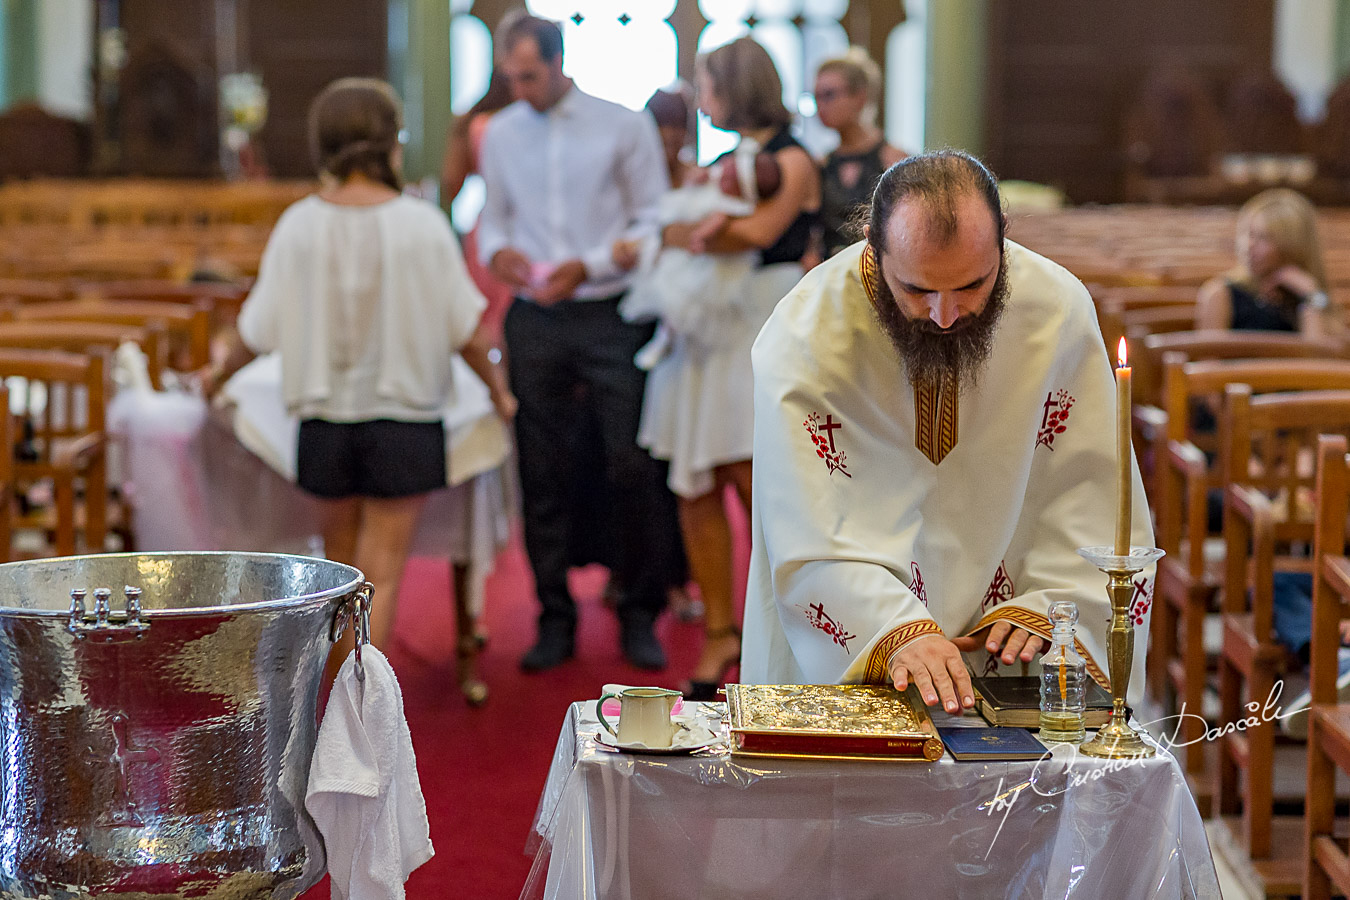 Angelic Christening in Limassol - 29